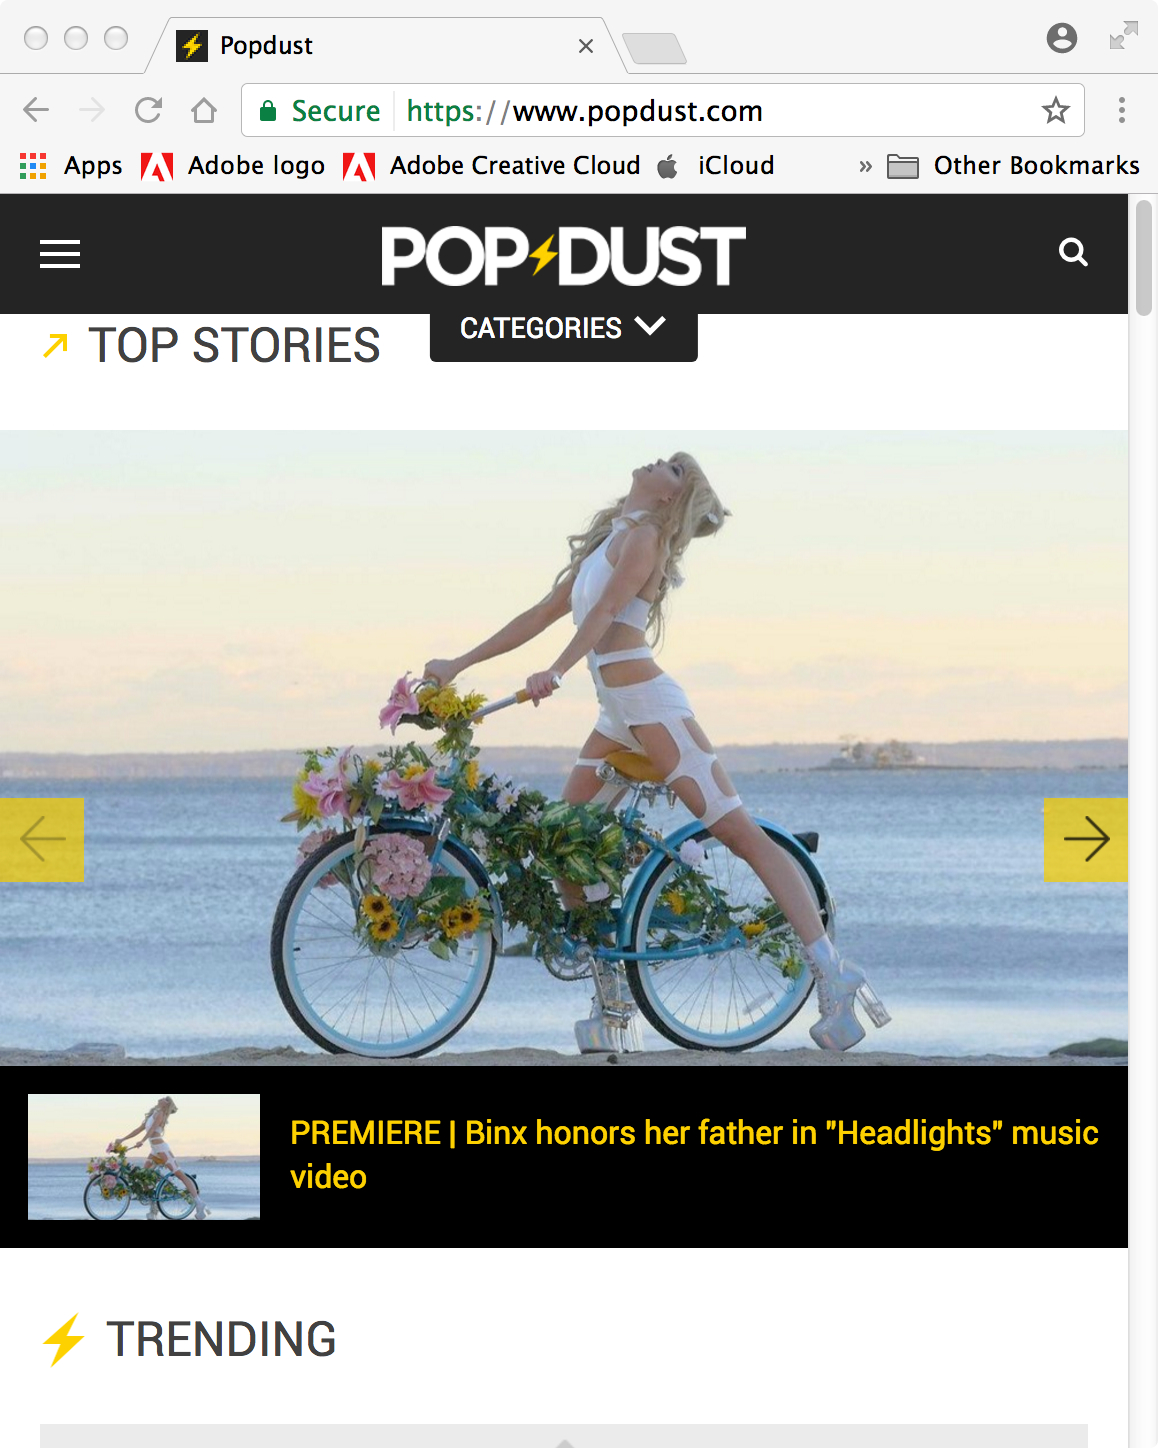 headlights music video binx on Popdust